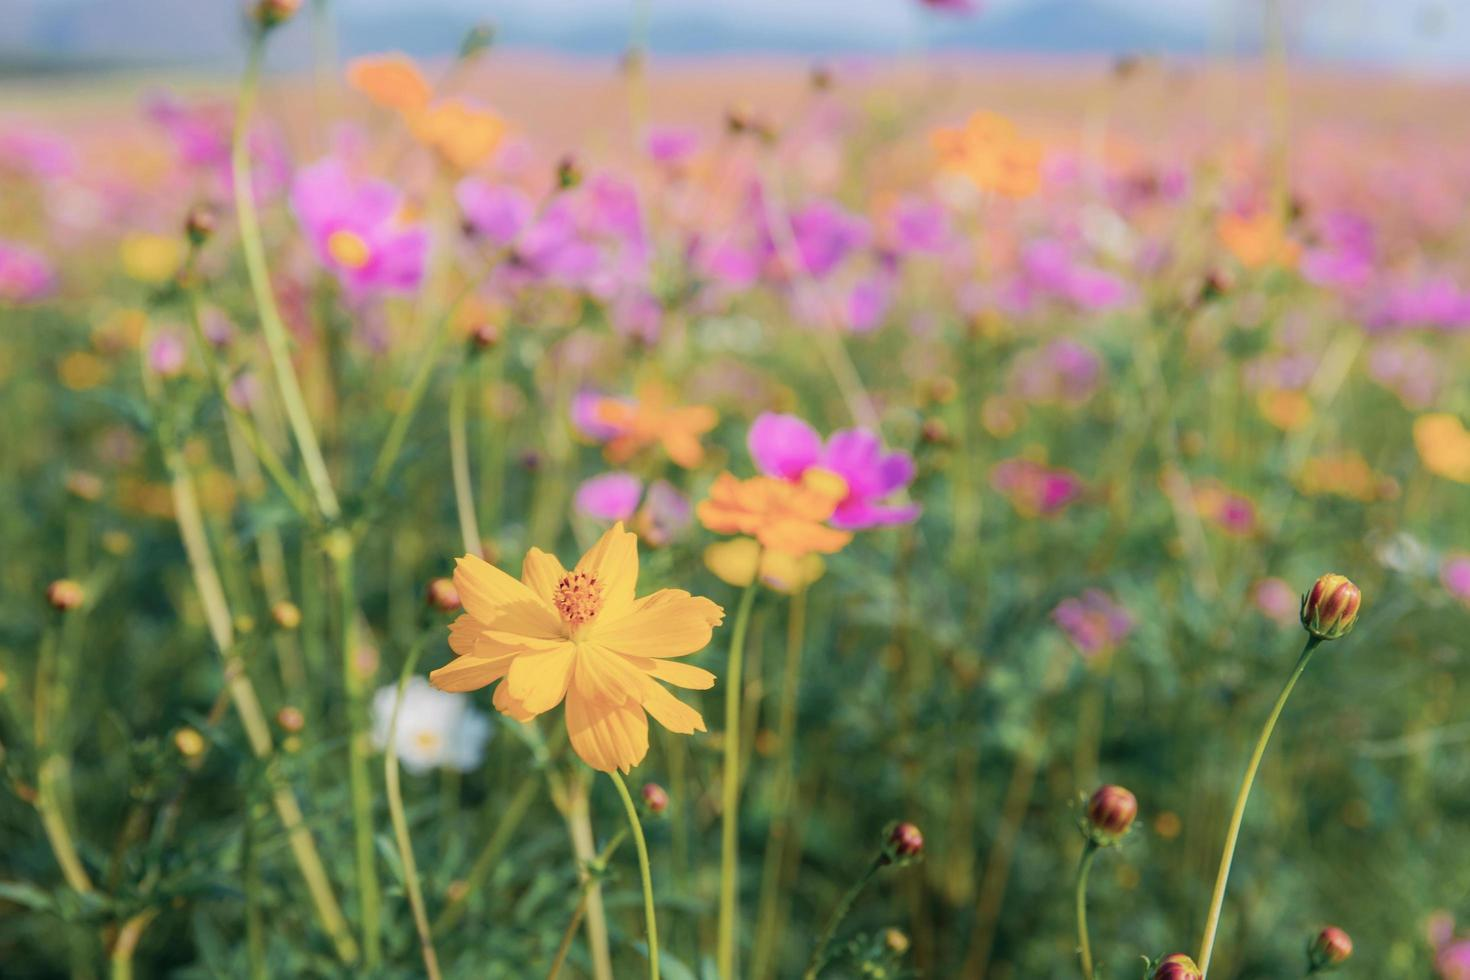 Cosmos flower and colorful field photo